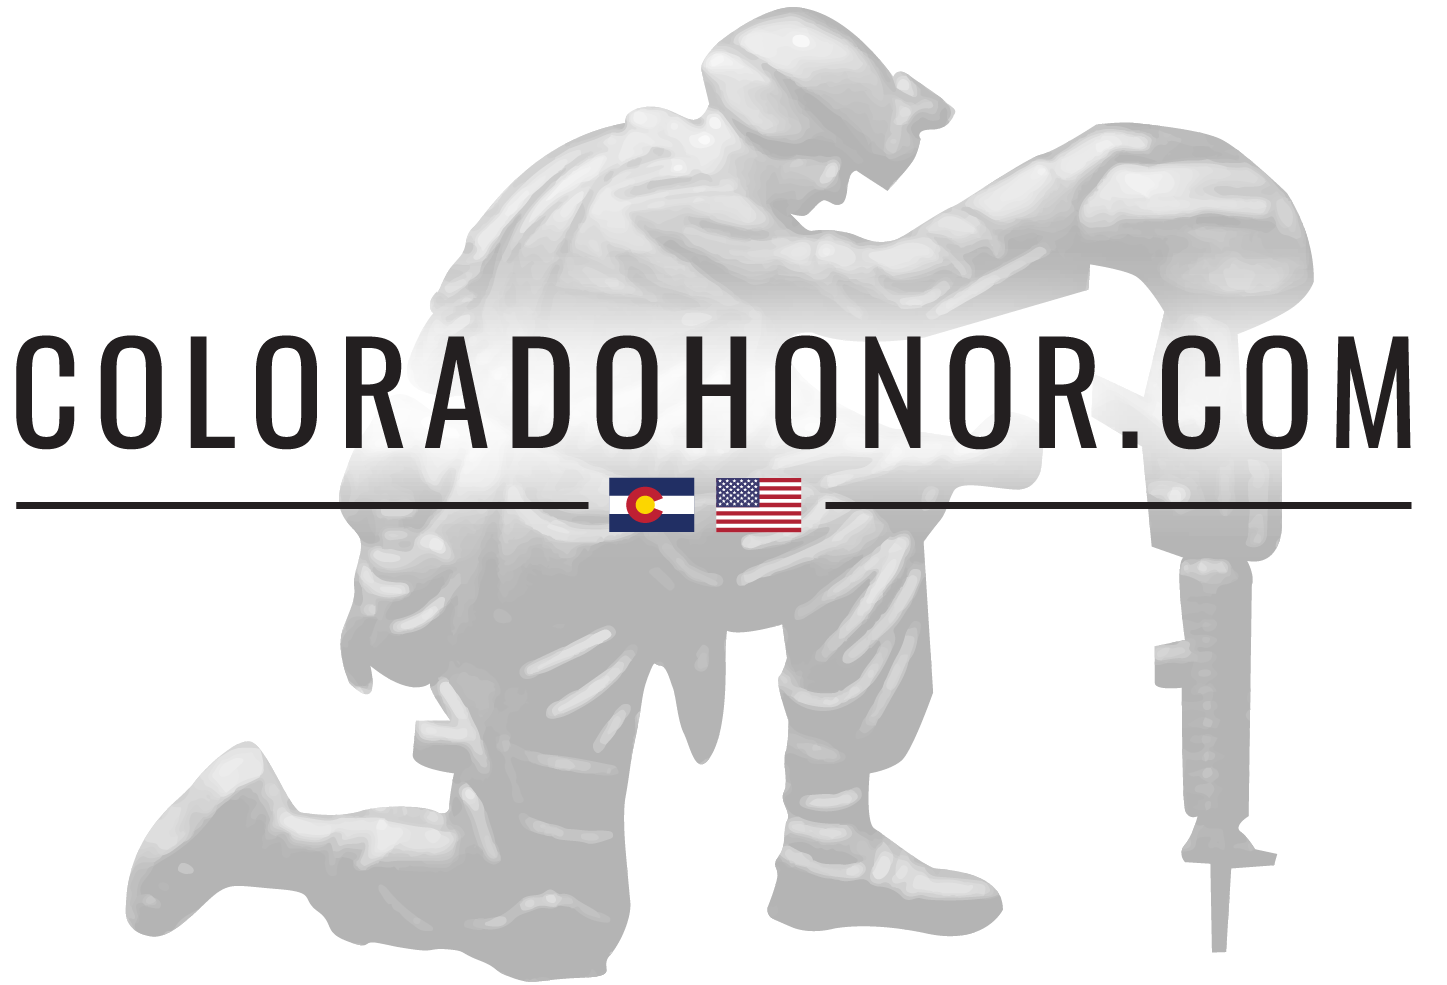 ColoradoHonor.Com